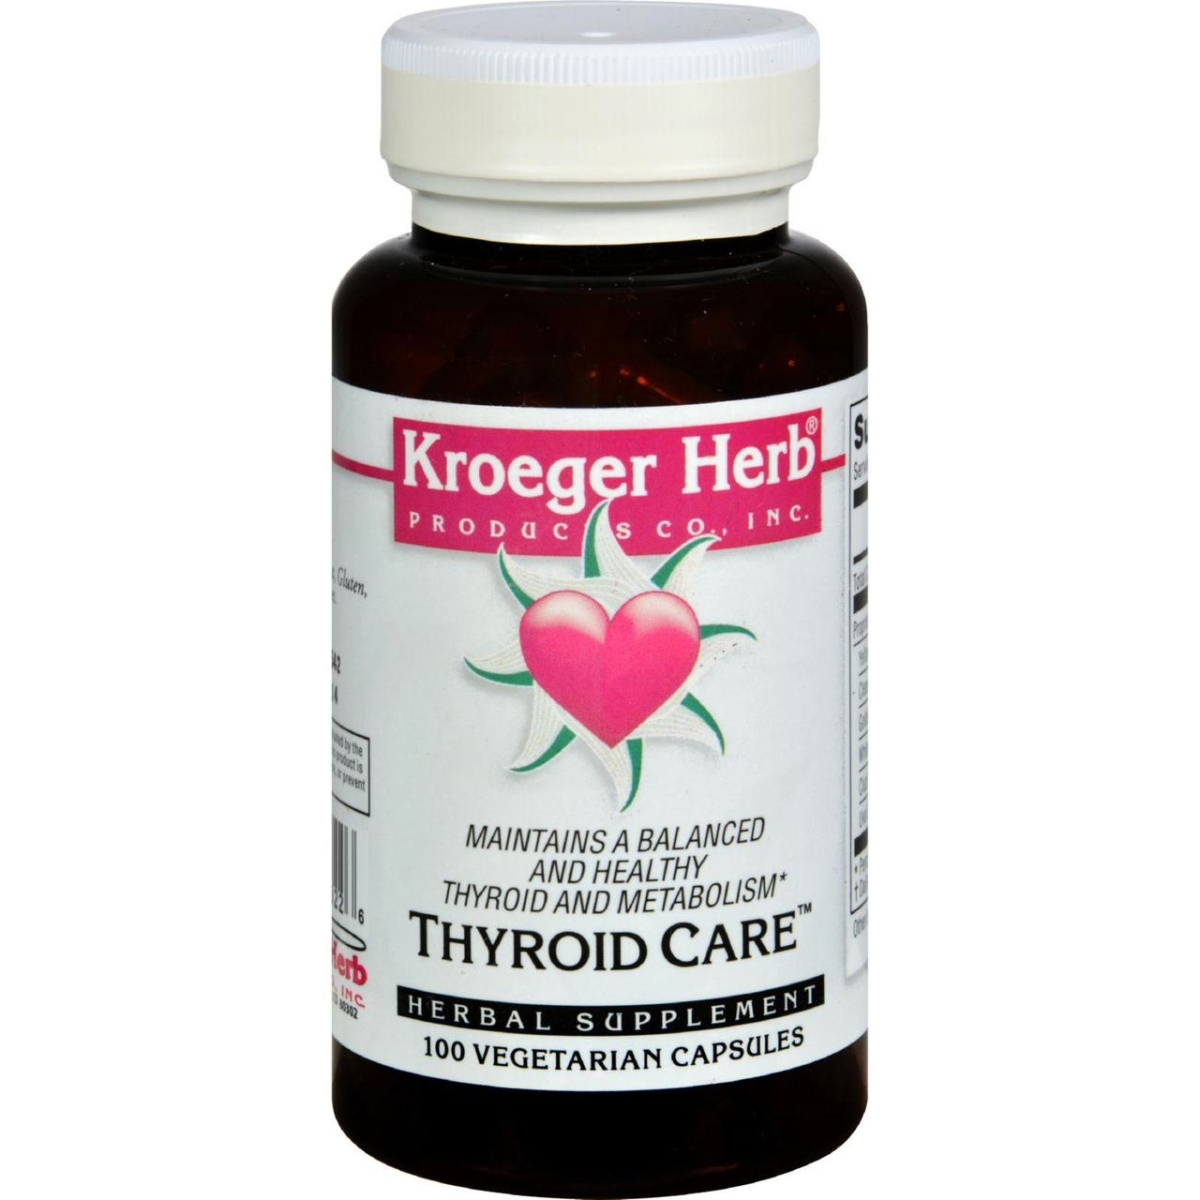 Kroeger Herb HG0420232 Thyroid Care - 100 Capsules